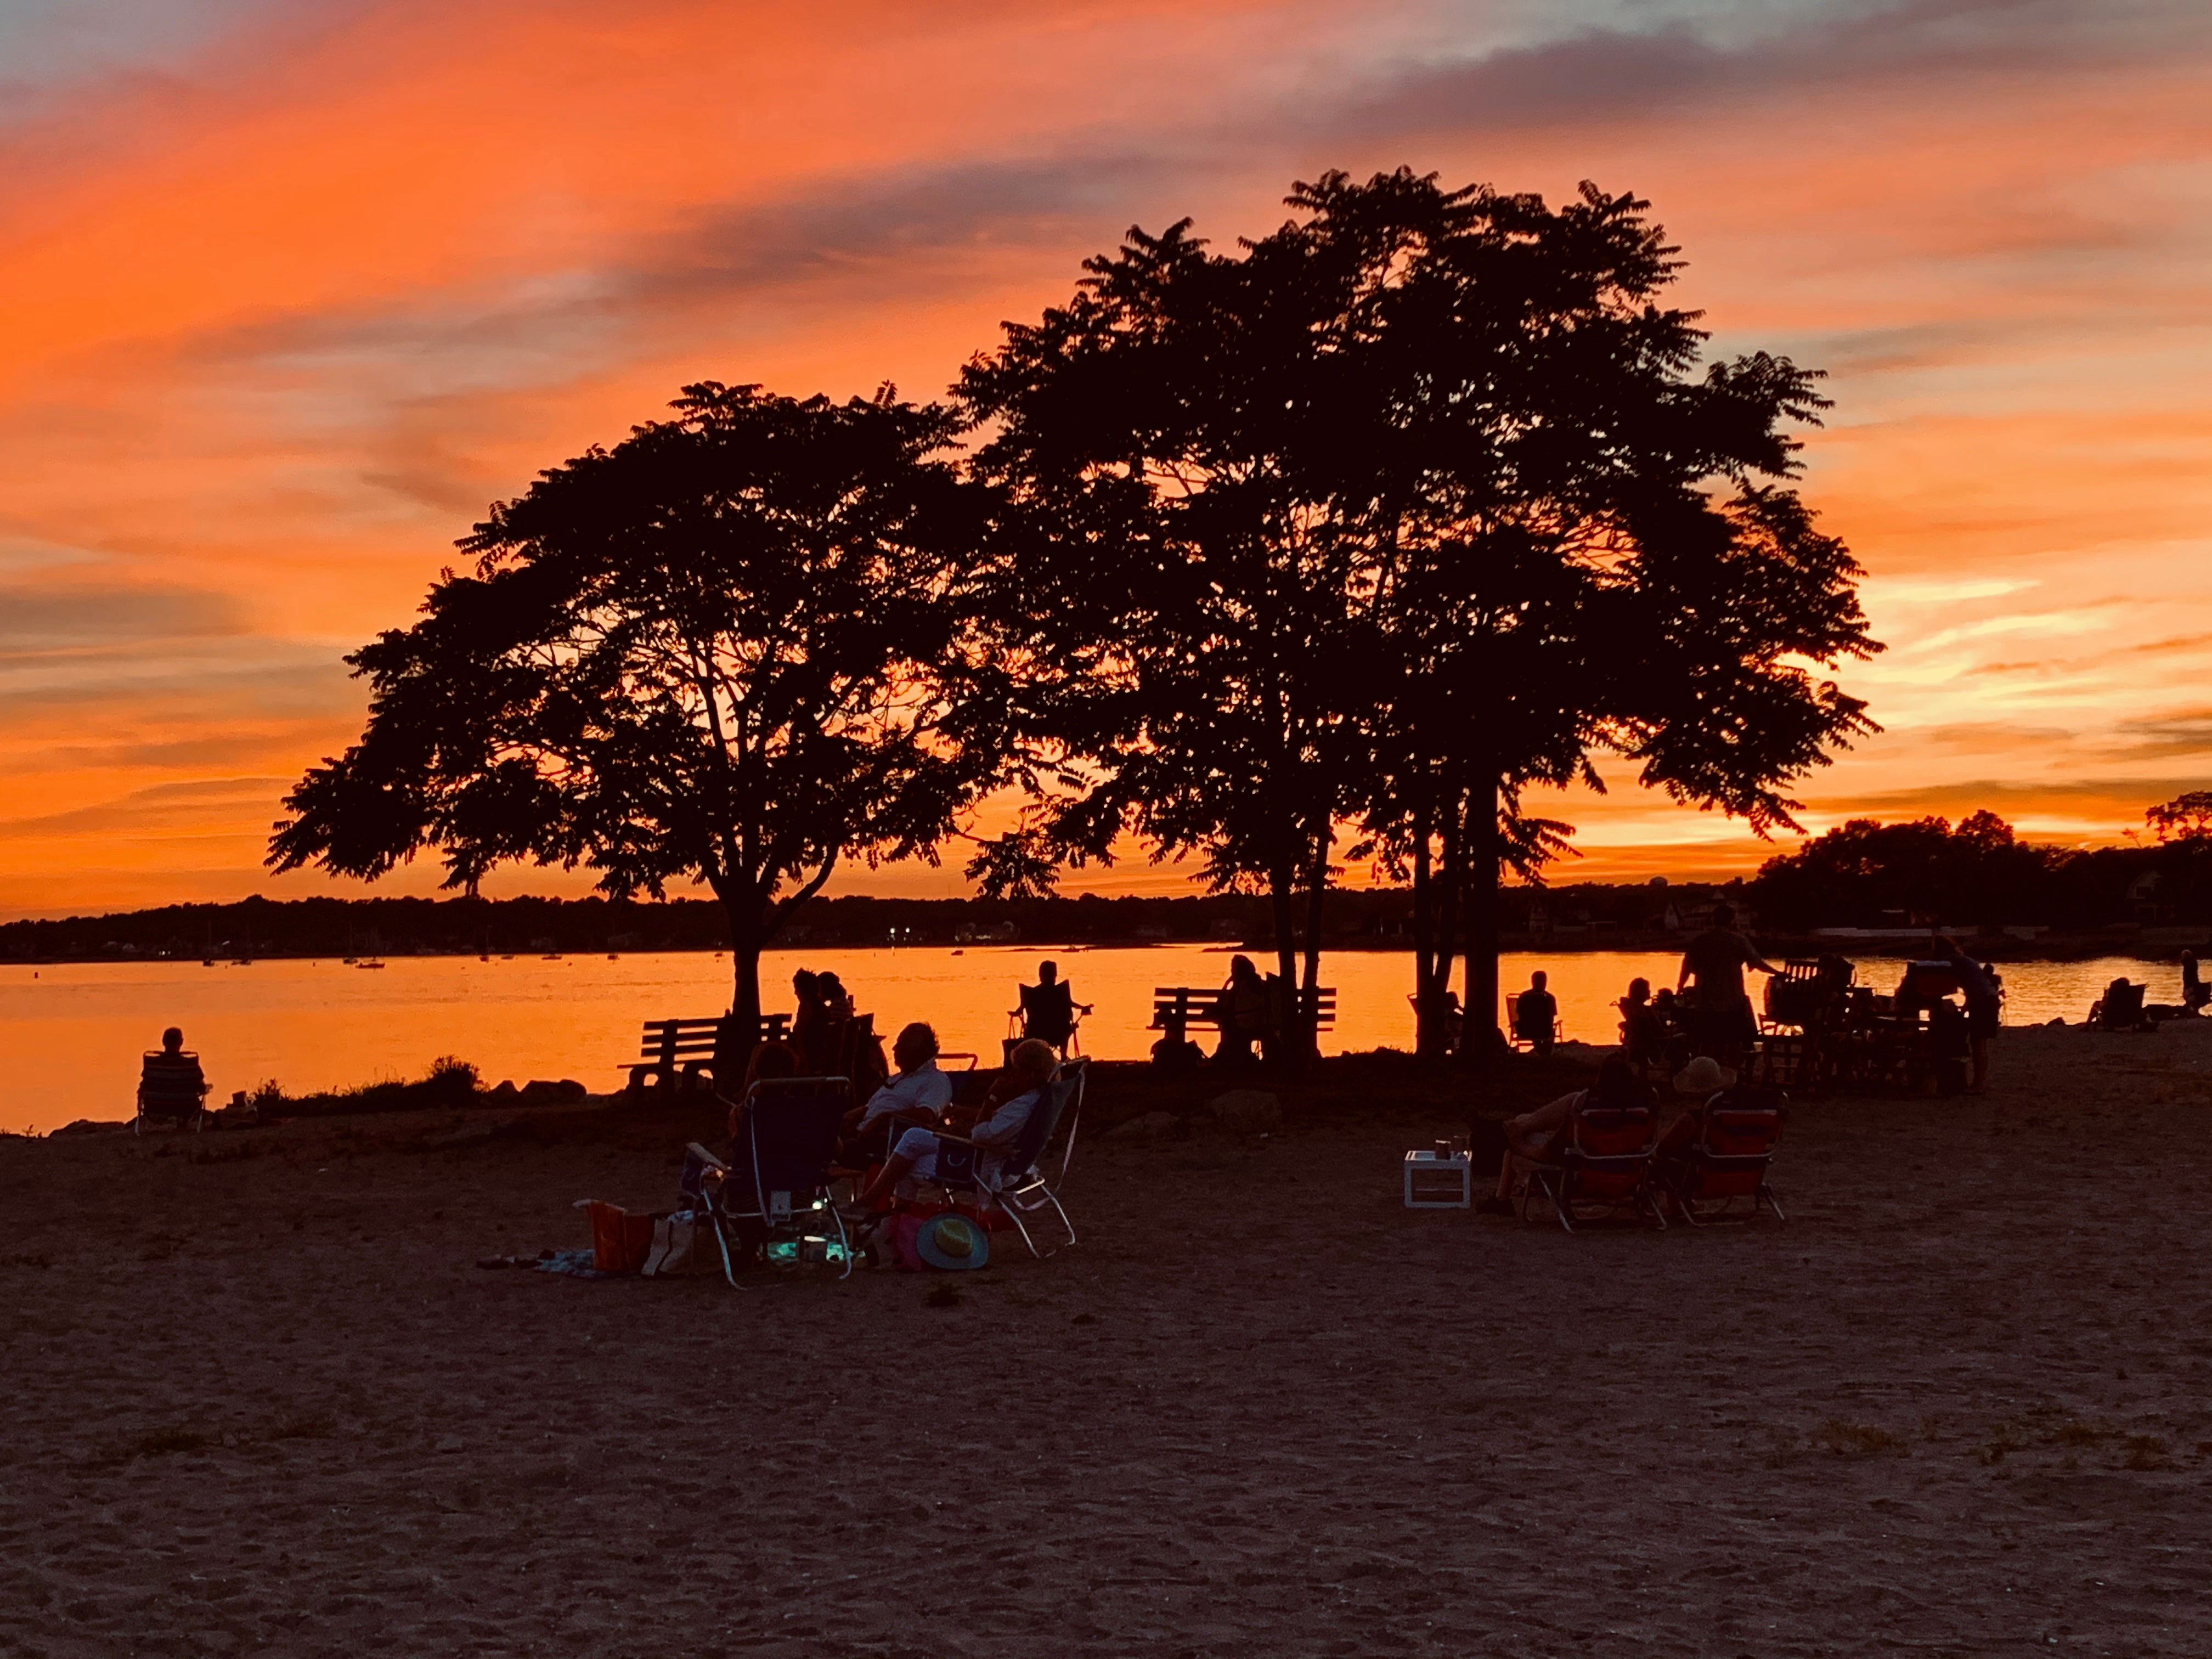 Sunset at Compo Beach in Westport, Connecticut